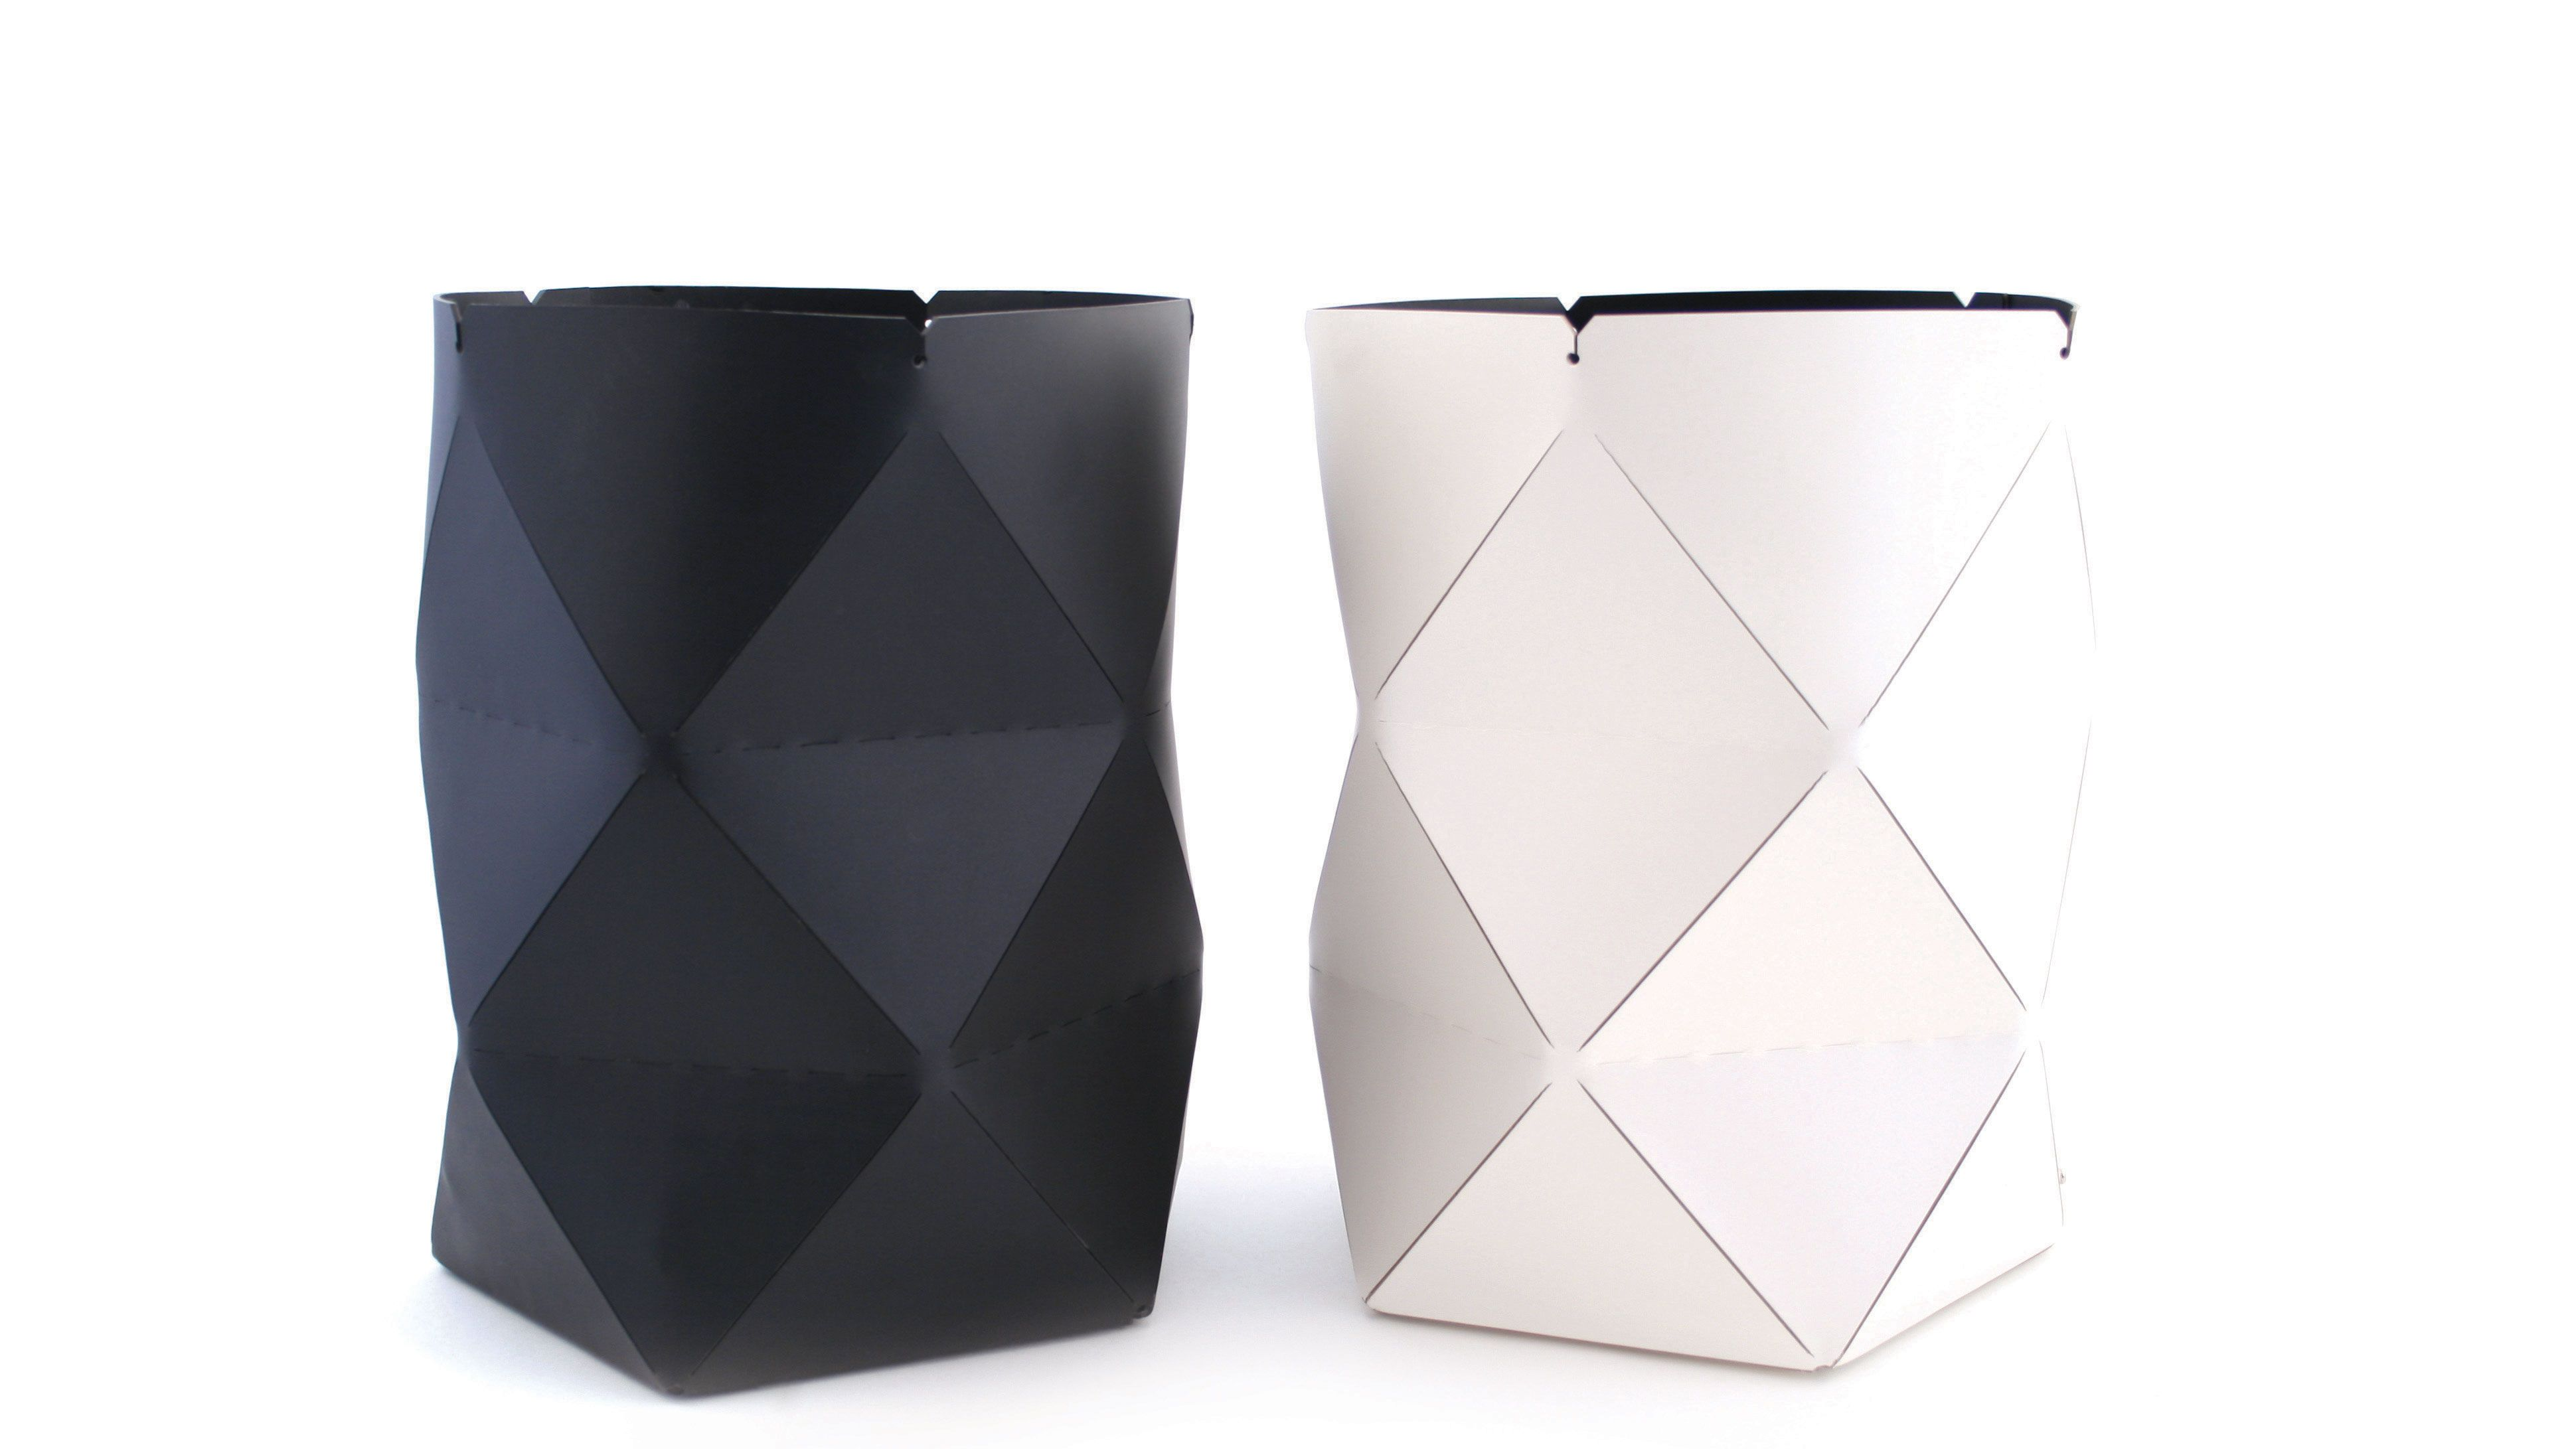 Pinetti big leather baskets - white and black